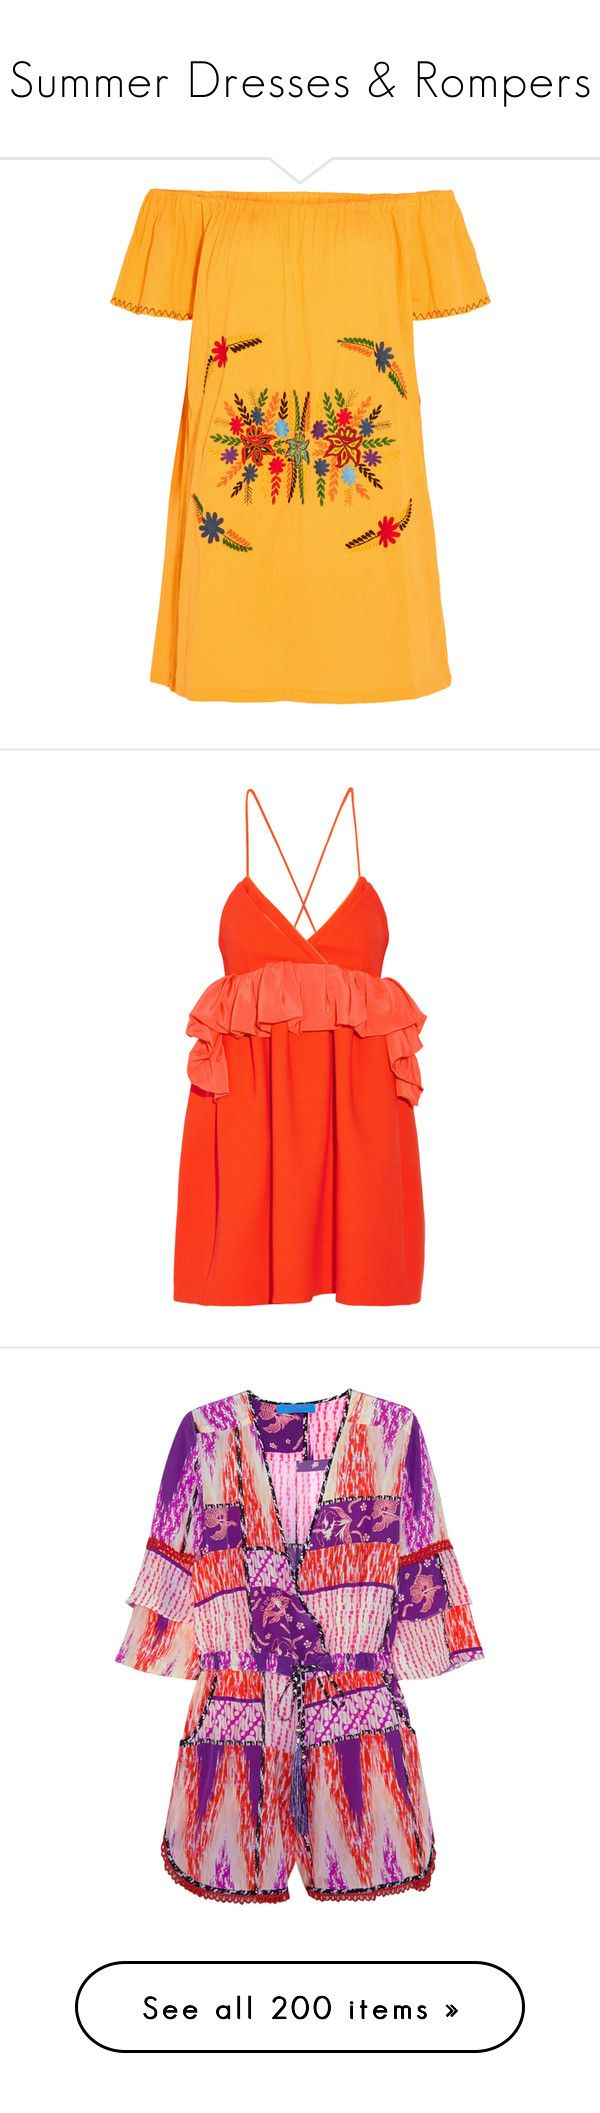 """""""Summer Dresses & Rompers"""" by pocahaunted666 ❤ liked on Polyvore featuring dresses, yellow, off the shoulder mini dress, embroidered dress, cotton mini dress, yellow cotton dress, short dresses, vestido, orange and ruffle wrap dress"""